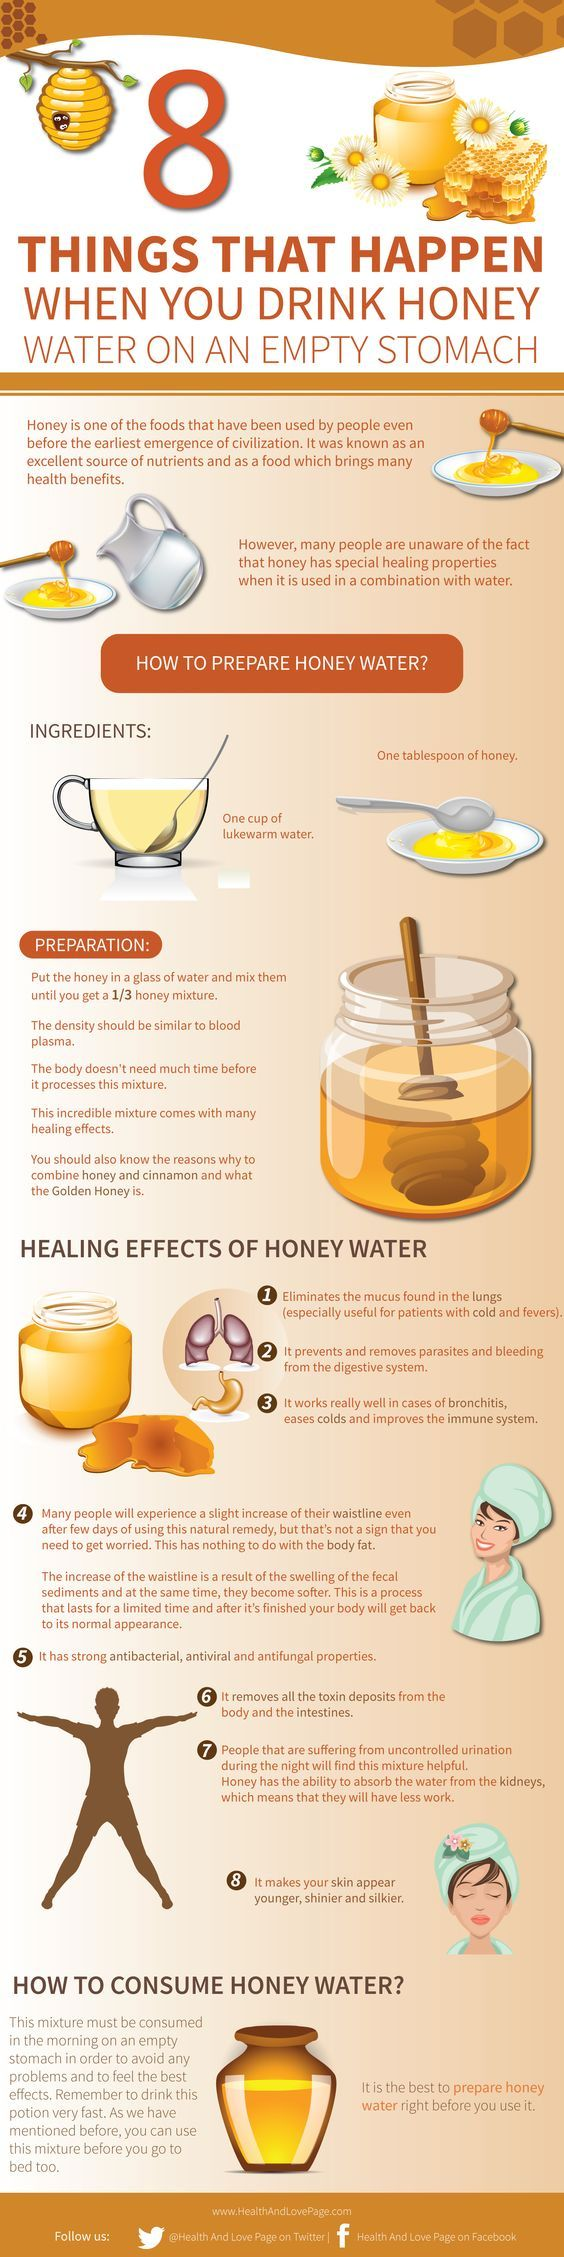 there are many healing aspects to honey, especially when you